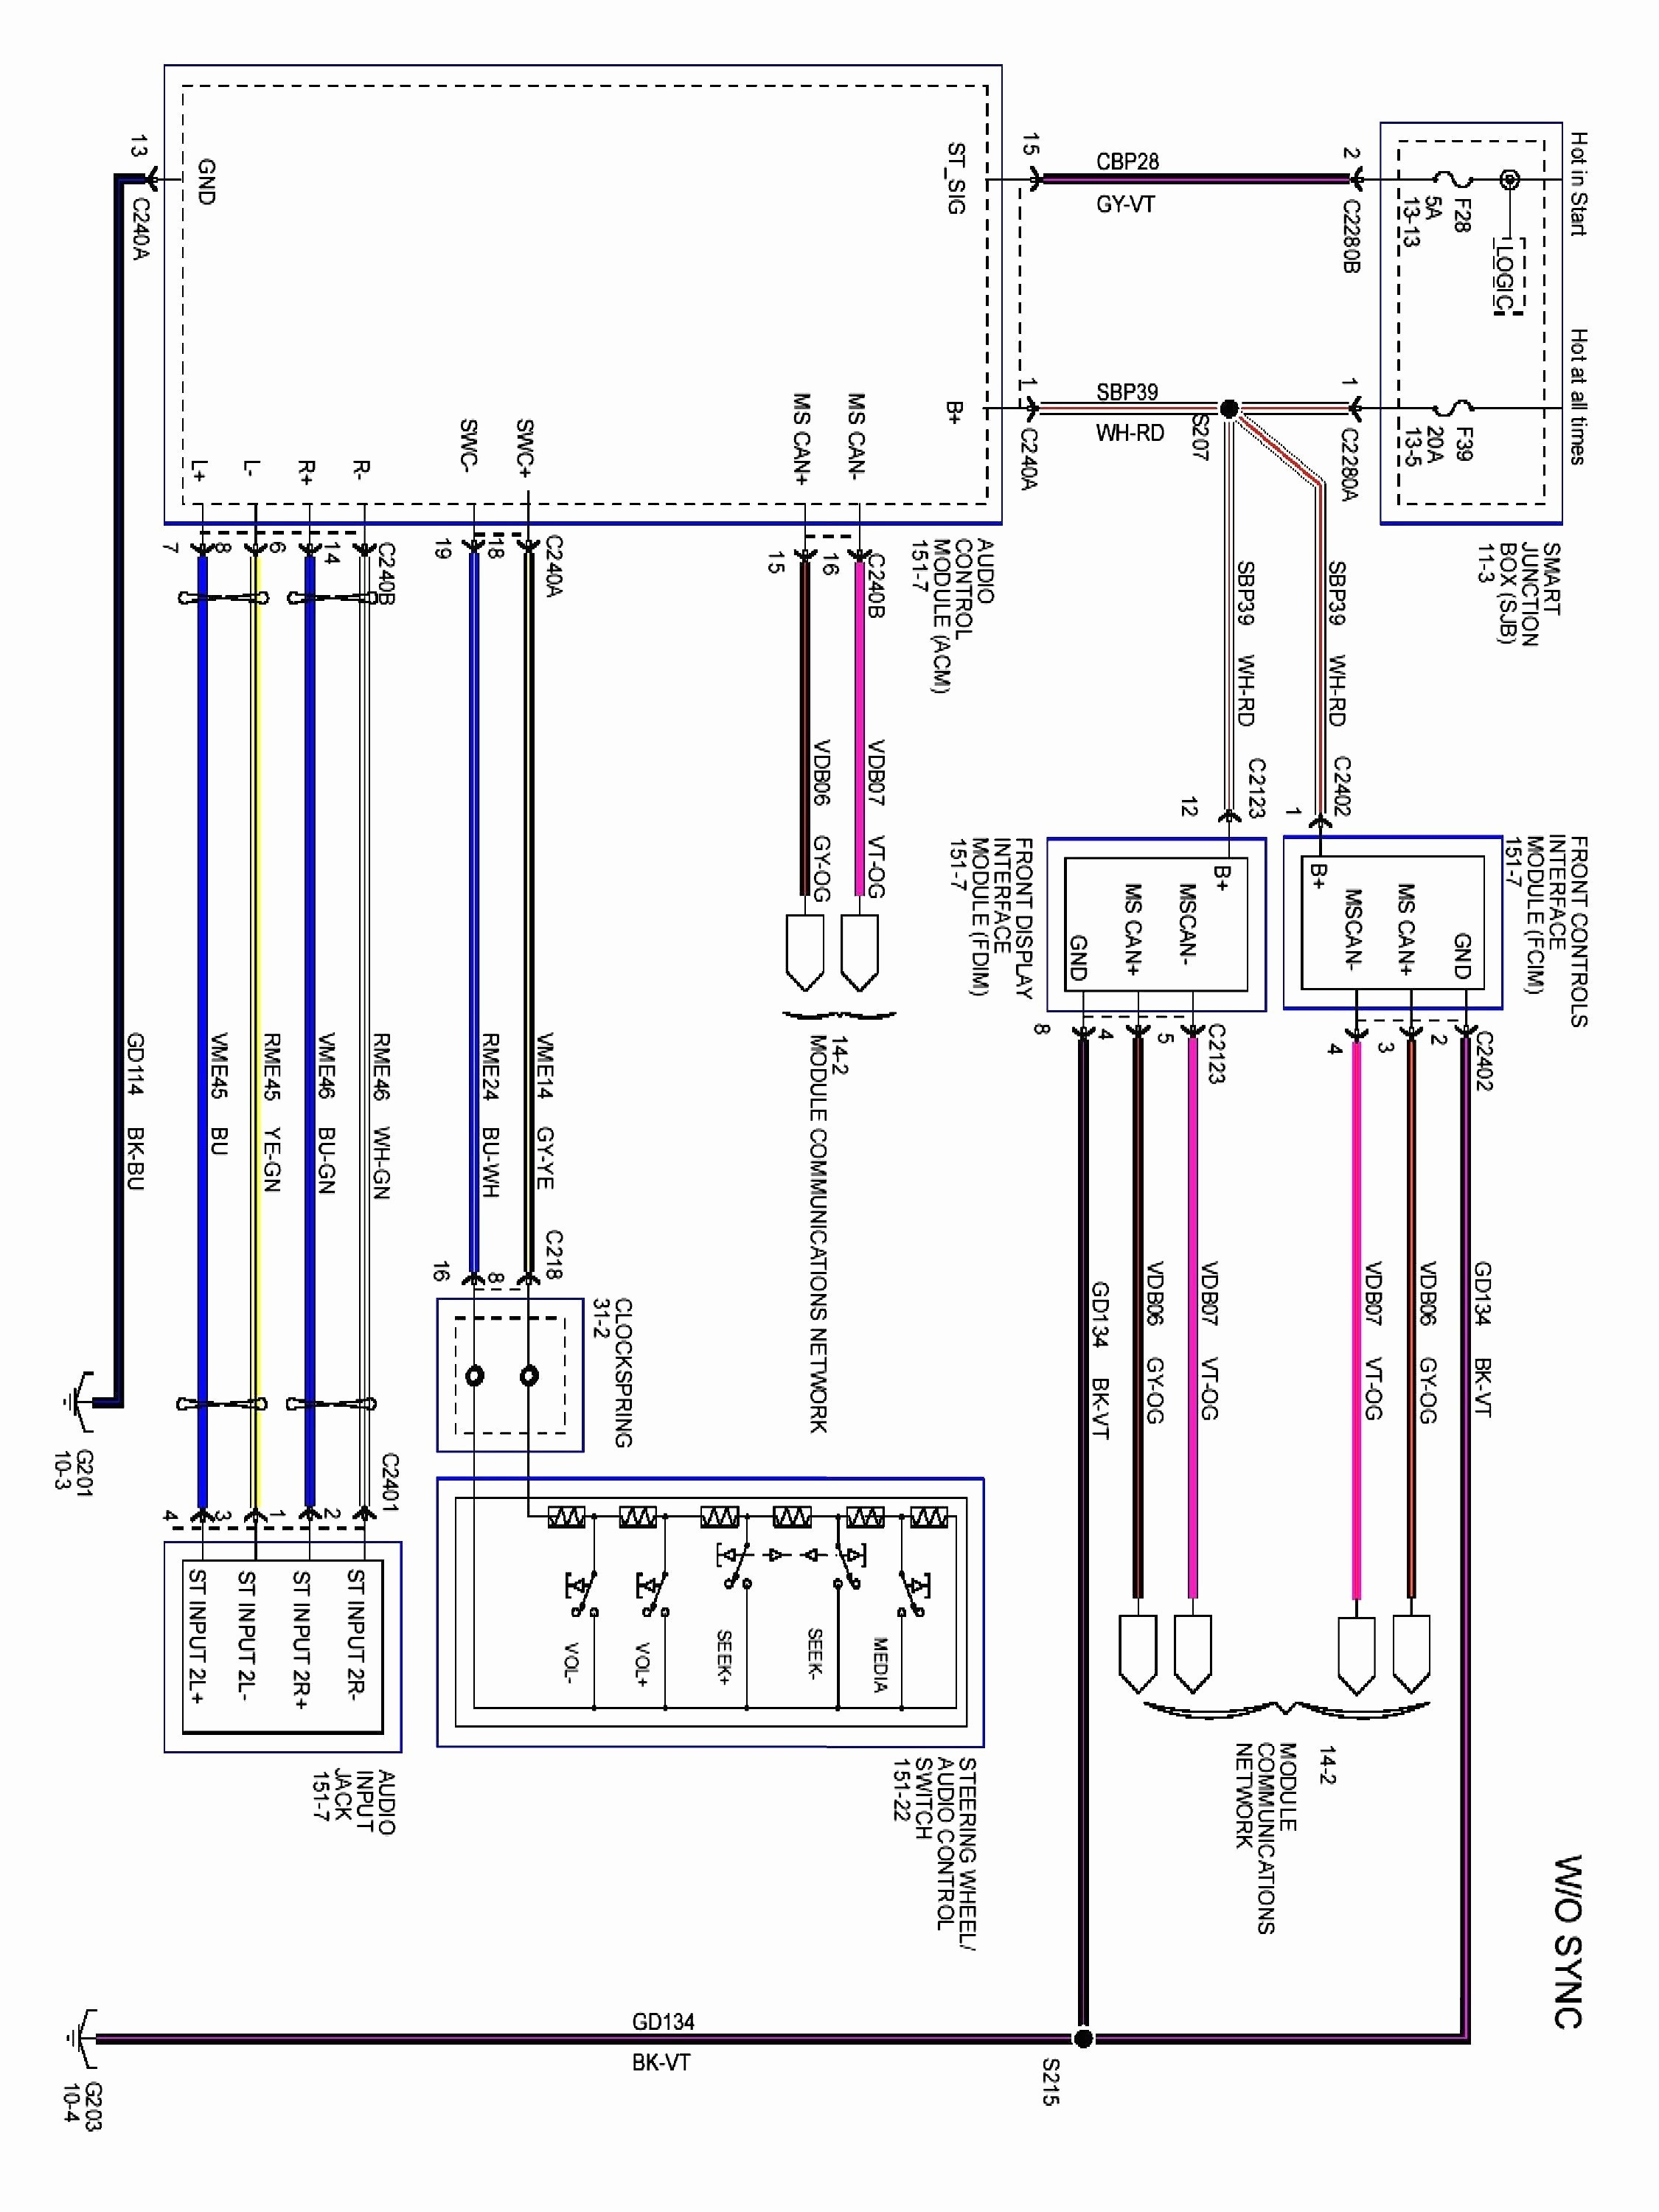 Car Alarm Installation Wiring Diagram Car Amp Wiring Diagram Of Car Alarm Installation Wiring Diagram